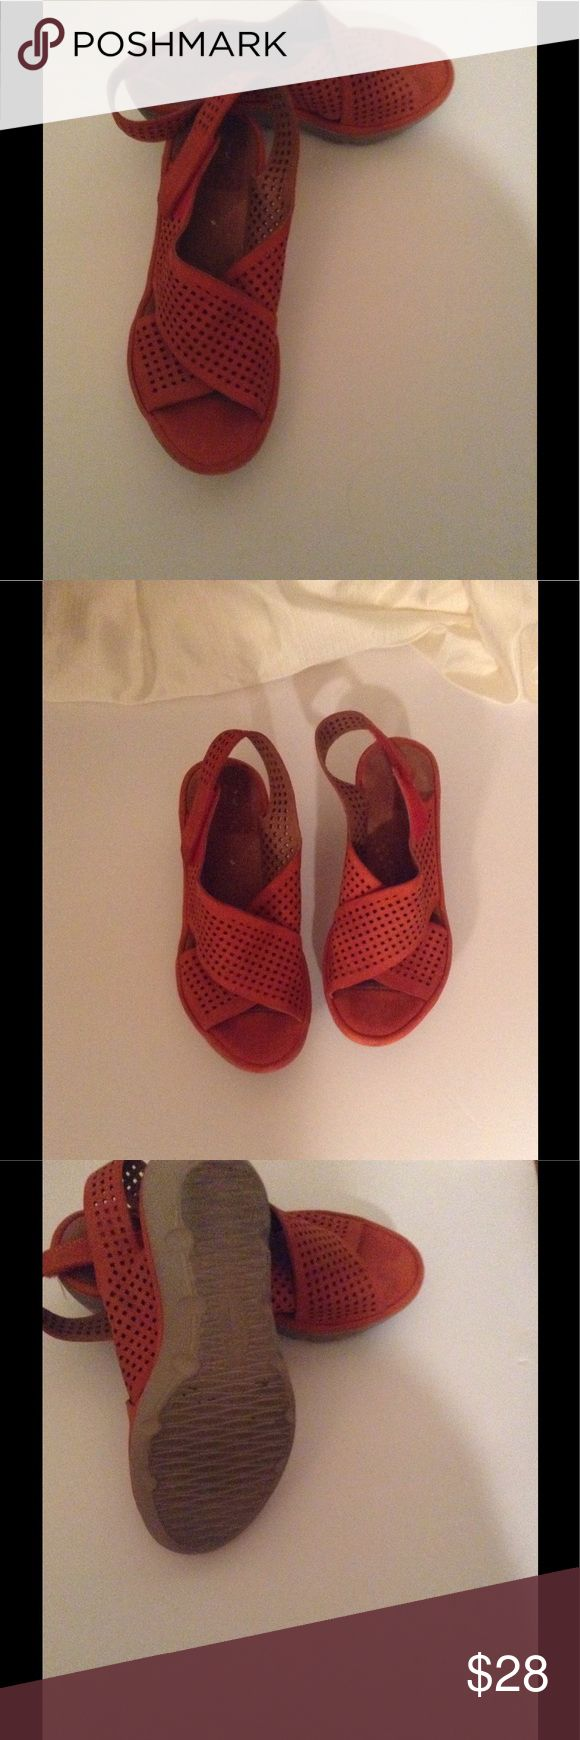 """Clarks orange suede-leather sandal sz. 5 Clarks sz. 5 M wedges , hook and loop fasteners height 1.5"""" like new condition. Clarks Shoes Wedges"""